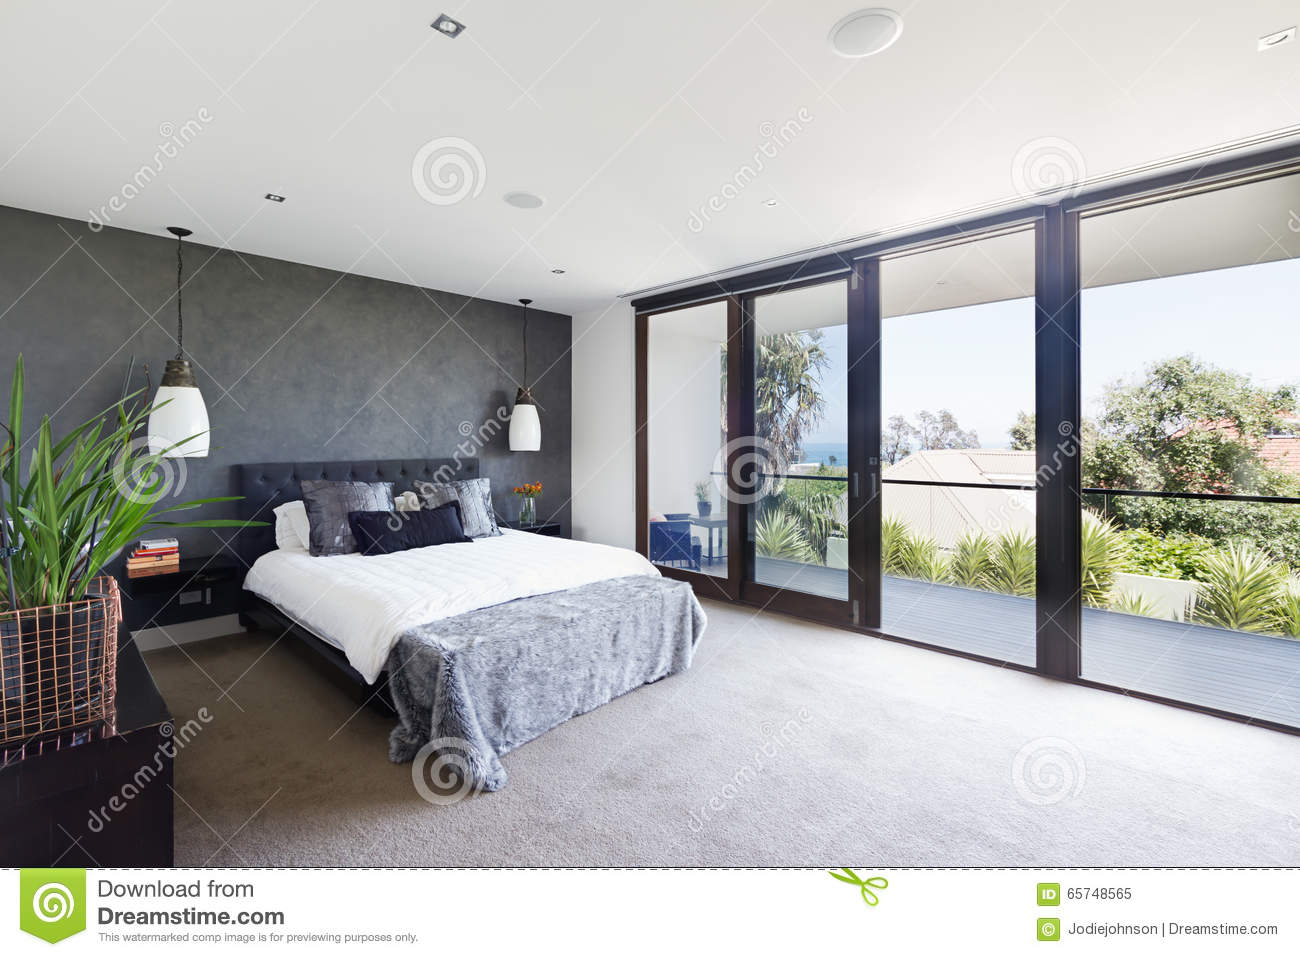 Master Bedroom Designs Australia spacious interior of designer master bedroom in luxury australia